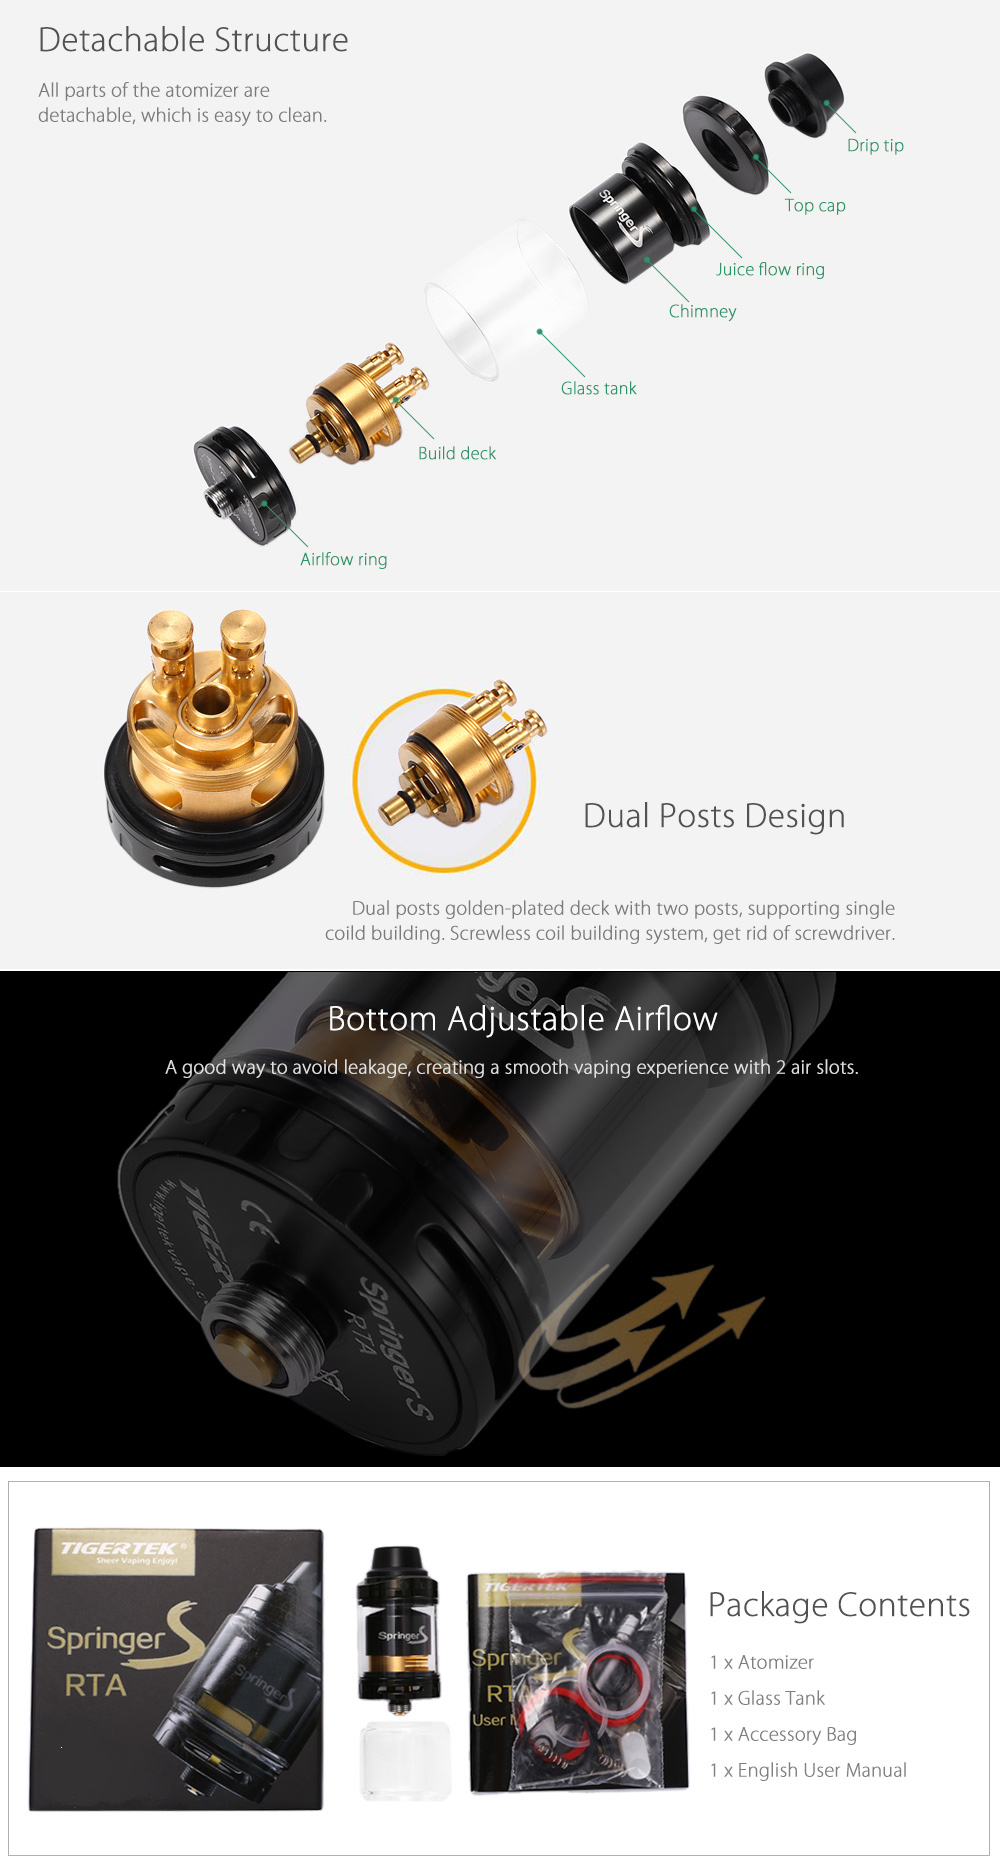 Tigertek Springer S RTA with 3.5ml / Bottom Adjustable Airflow / Golden-plated Deck for E Cigarette